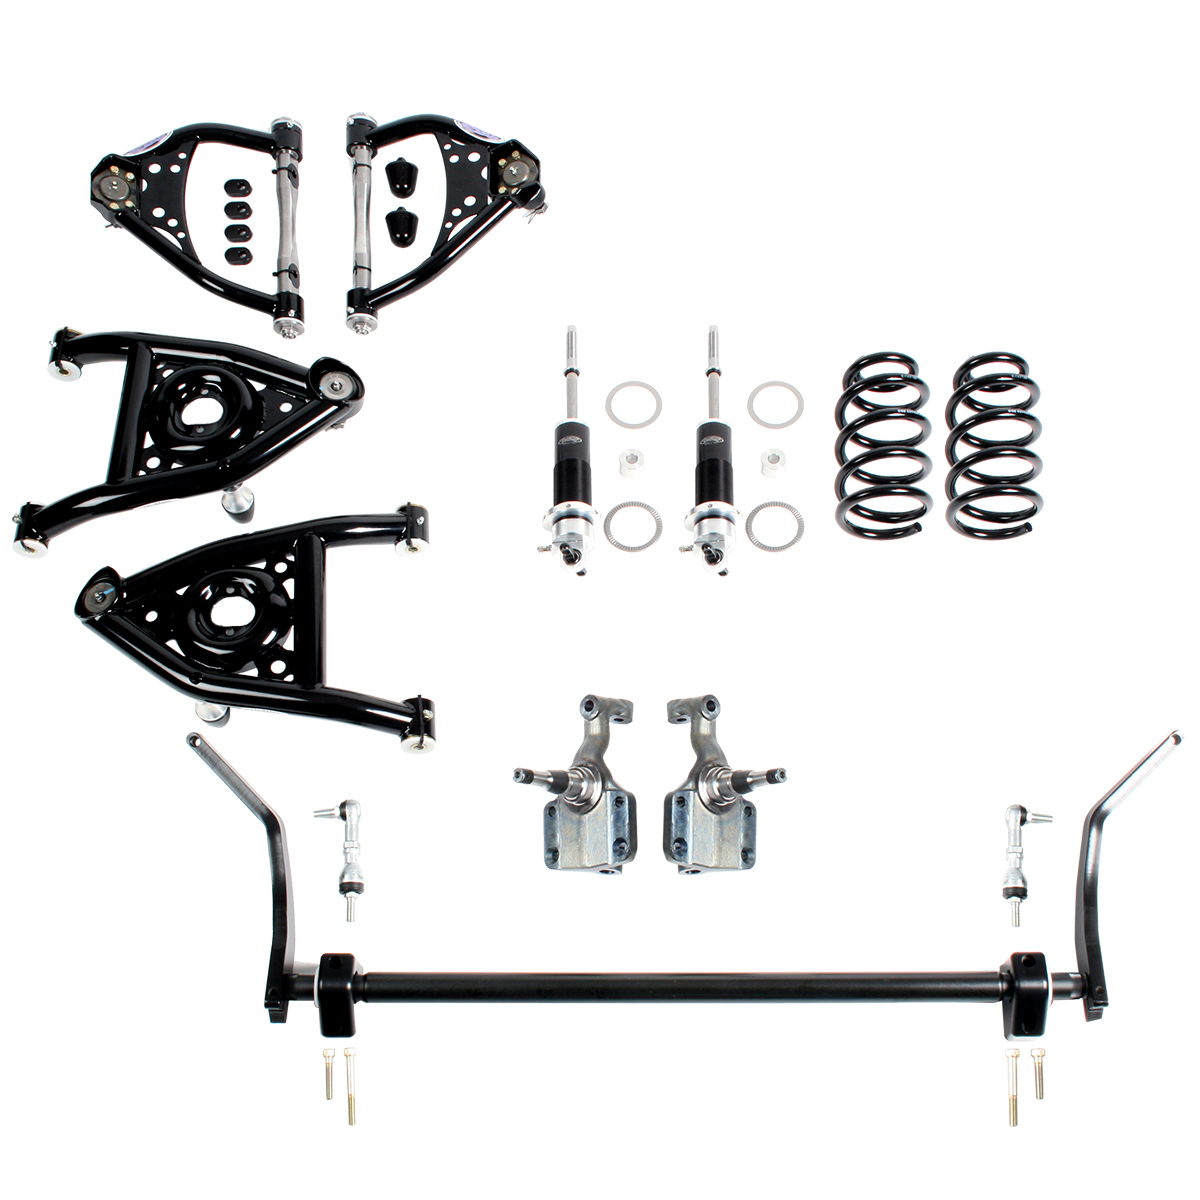 Detroit Speed  Speed Kit 2 with Splined Sway Bar Front Suspension Kit Double Adjustable Shocks w/Remote Canister 1967 A-Body SBC LS